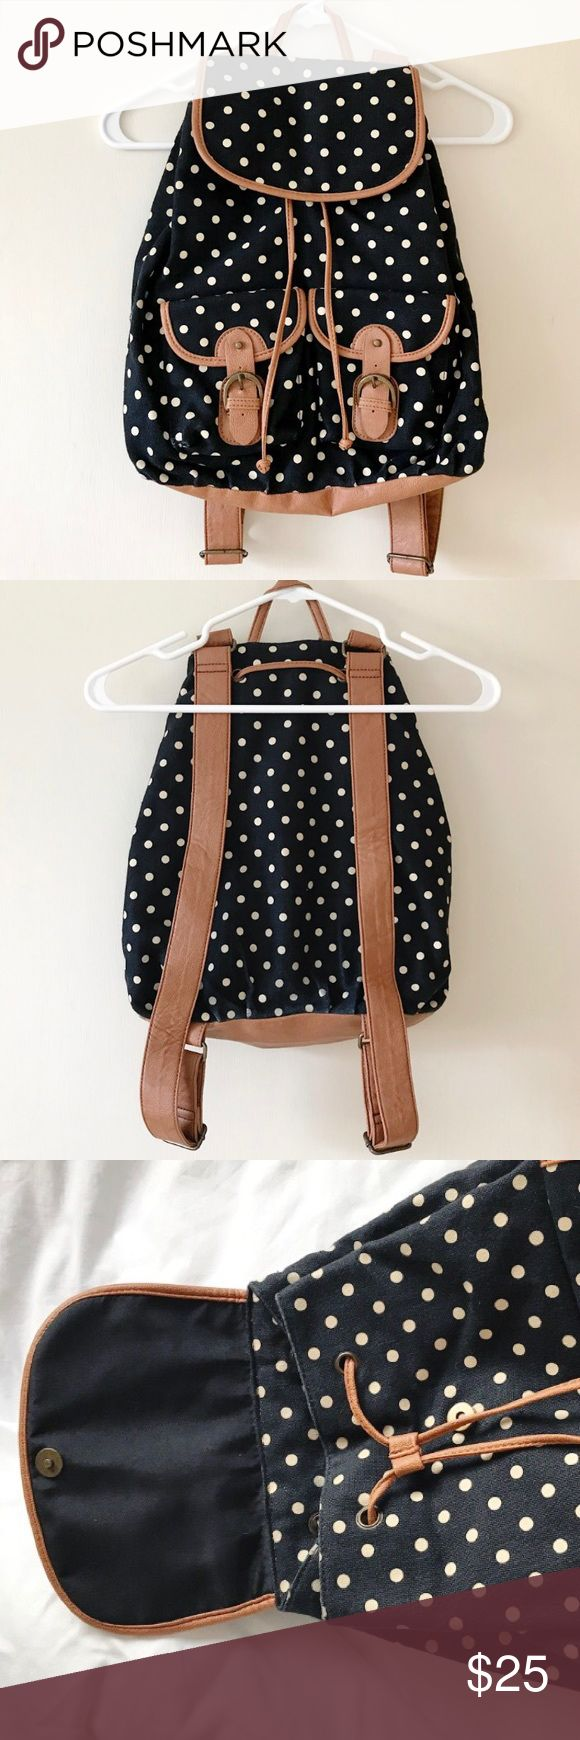 """ALDO Polka Dot Canvas Backpack ALDO Polka Dot Backpack. Navy canvas material with white polka dots. Straps and lining are a brown faux leather. Snap flap with drawstring opening. 2 outside pockets with buckles- 2 small pockets & 1 zip pocket inside. Flaws: minor signs of wear on the material on the back bottom. Otherwise in great condition!  ** Sorry, NO trades **  ** Please make offer using """"Offer"""" button ** Aldo Bags Backpacks"""